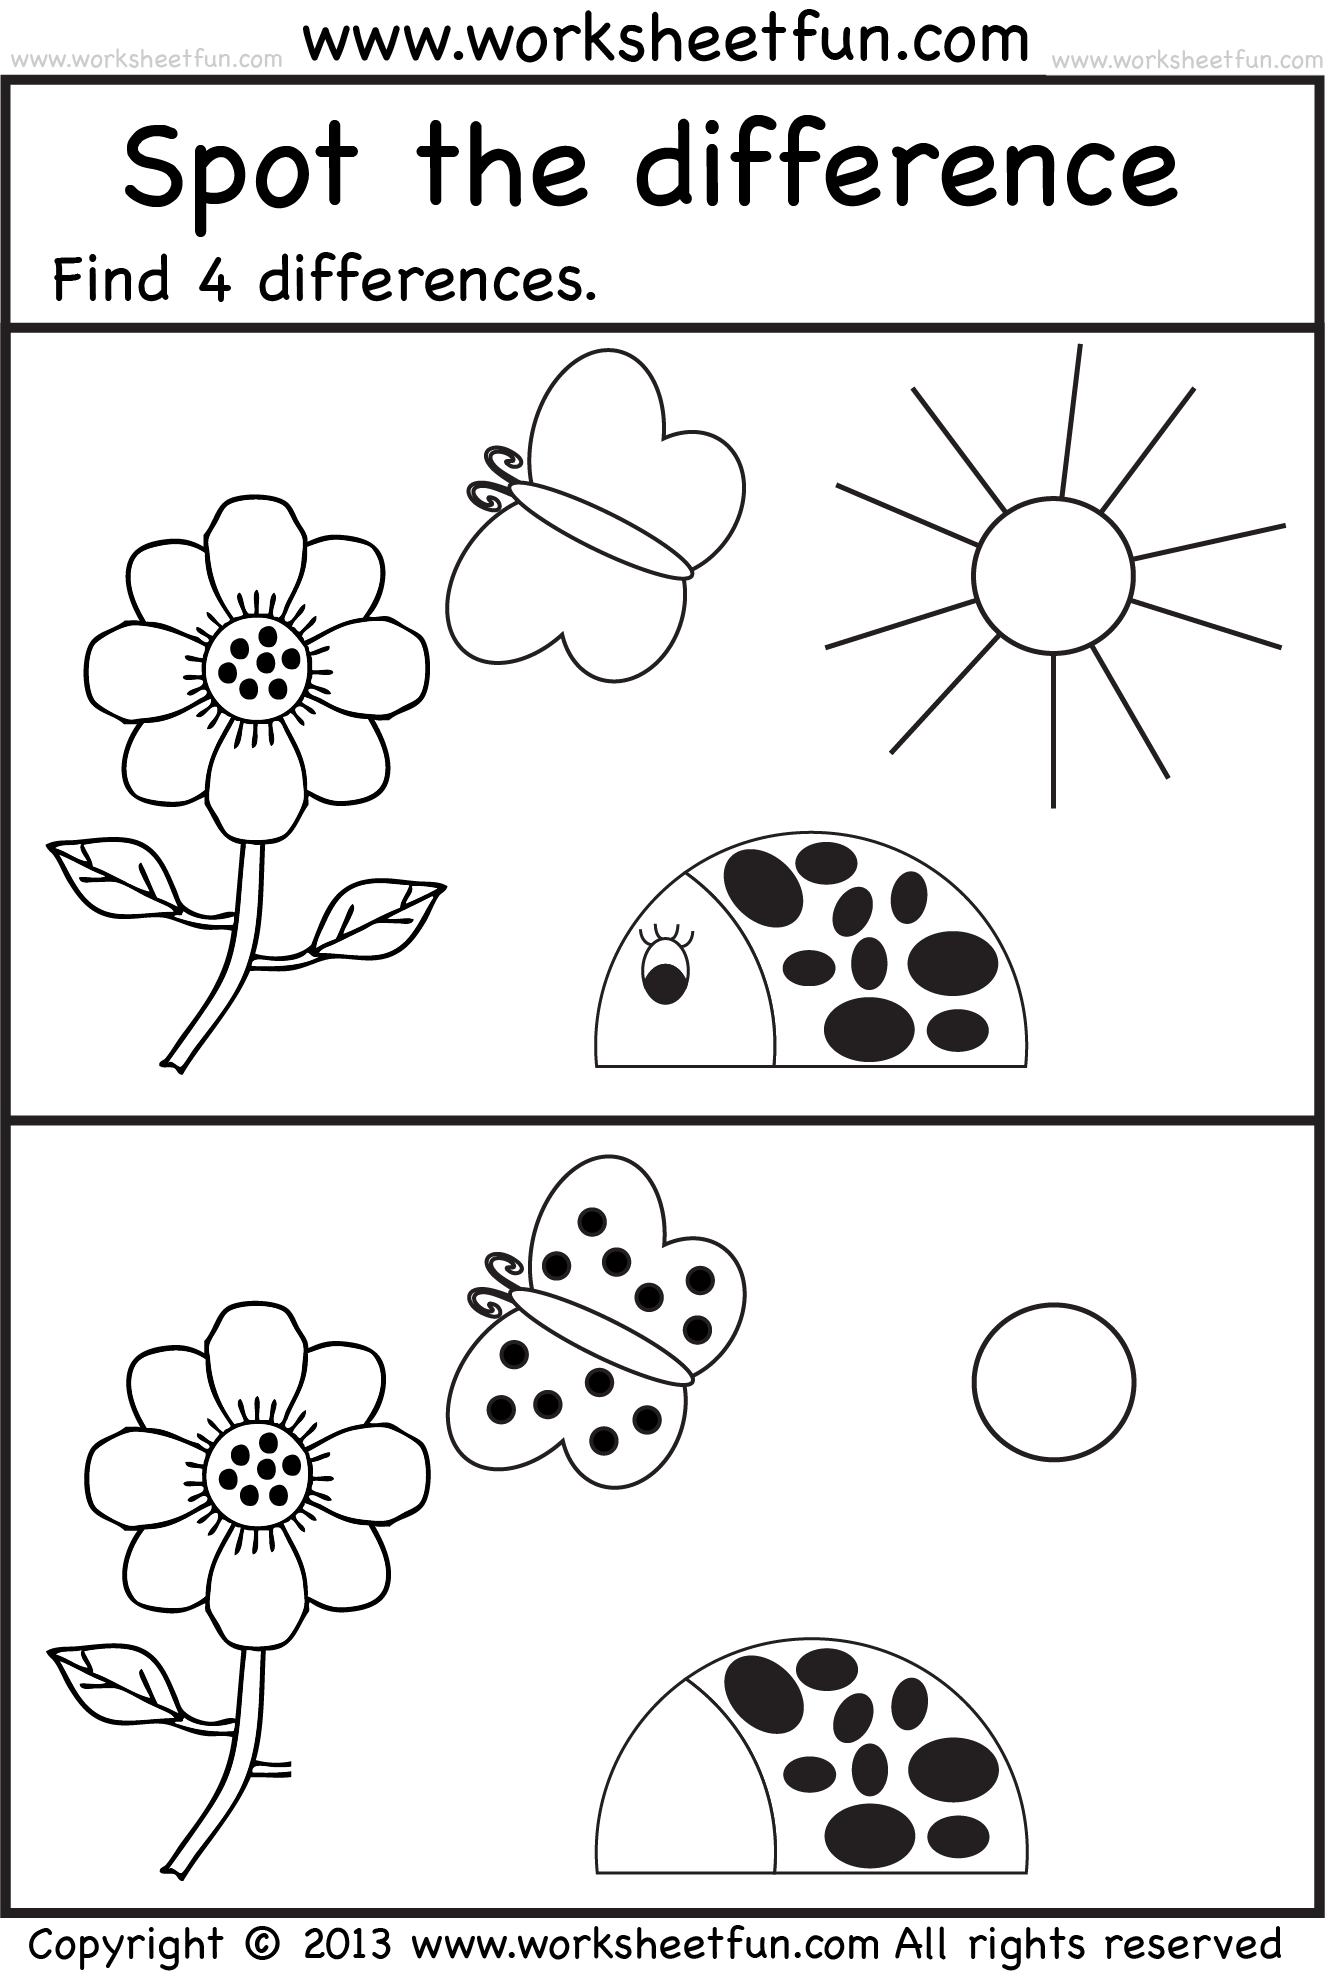 spot the difference Worksheets for kids, Preschool